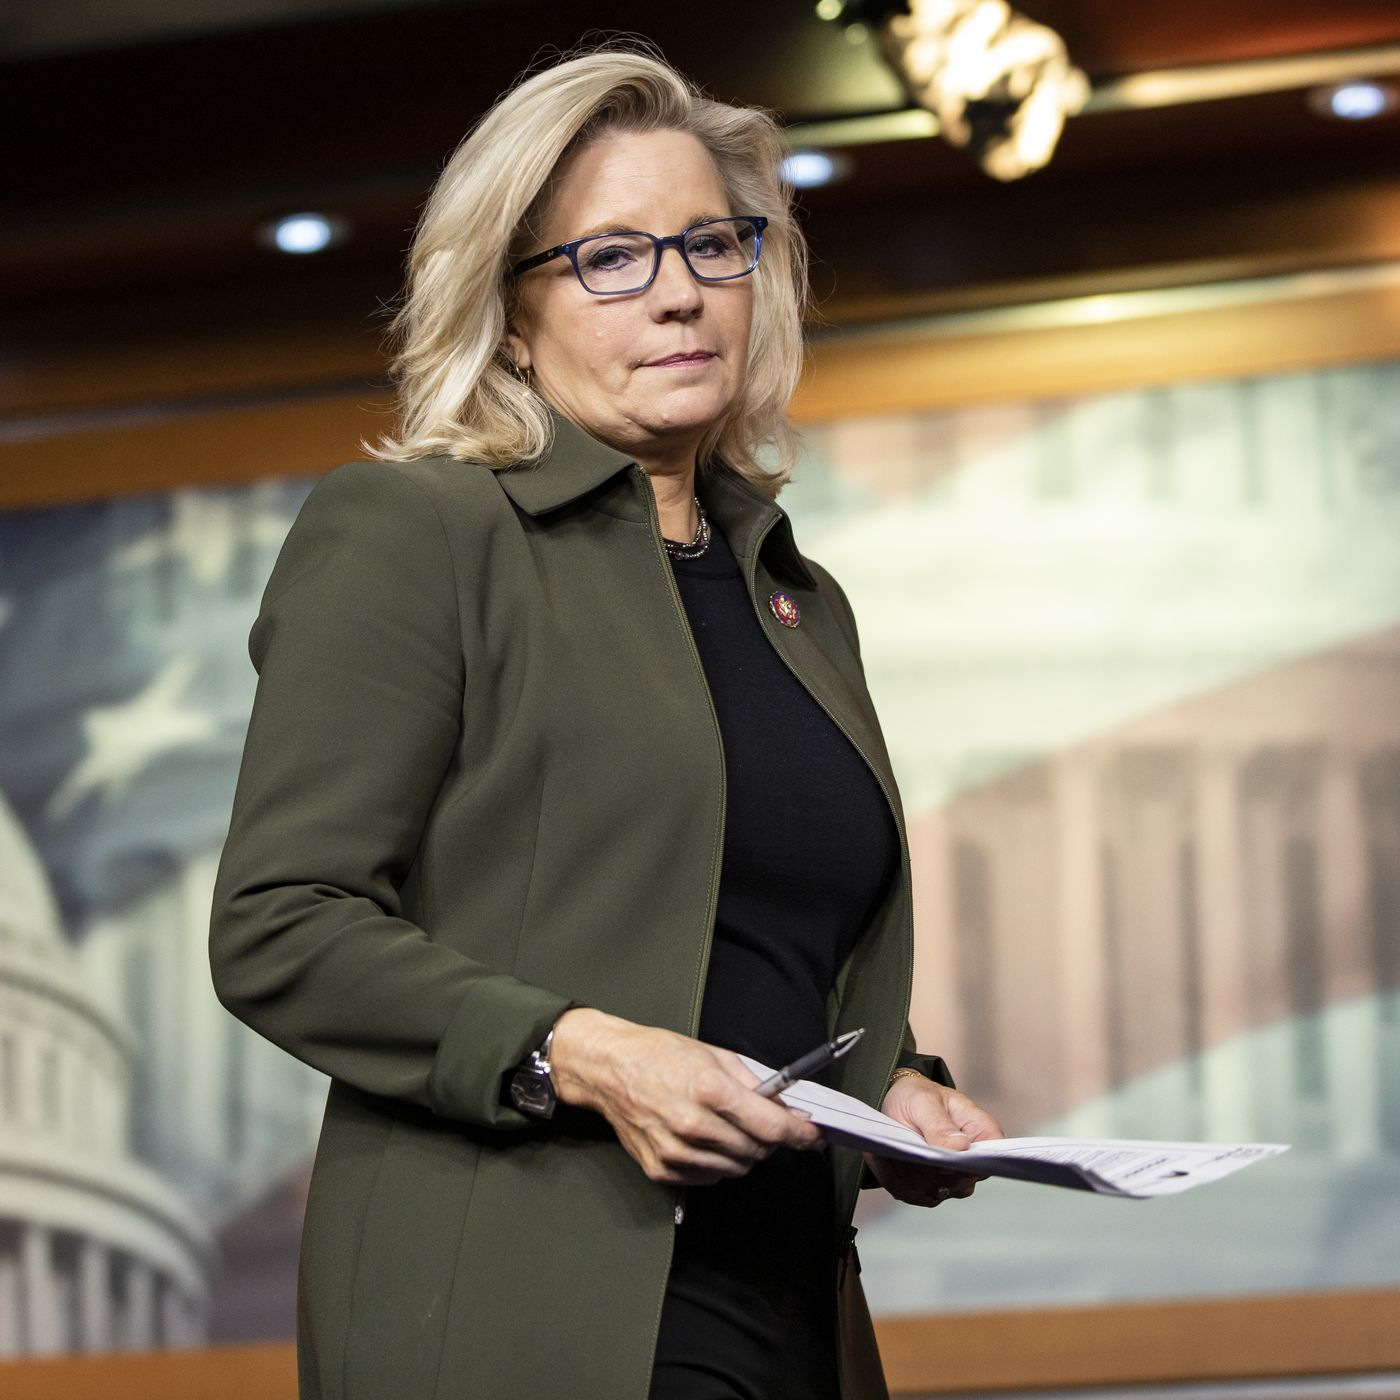 Liz Cheney asks Fox News viewers to reject Trump after being censured by  her state party - Vox